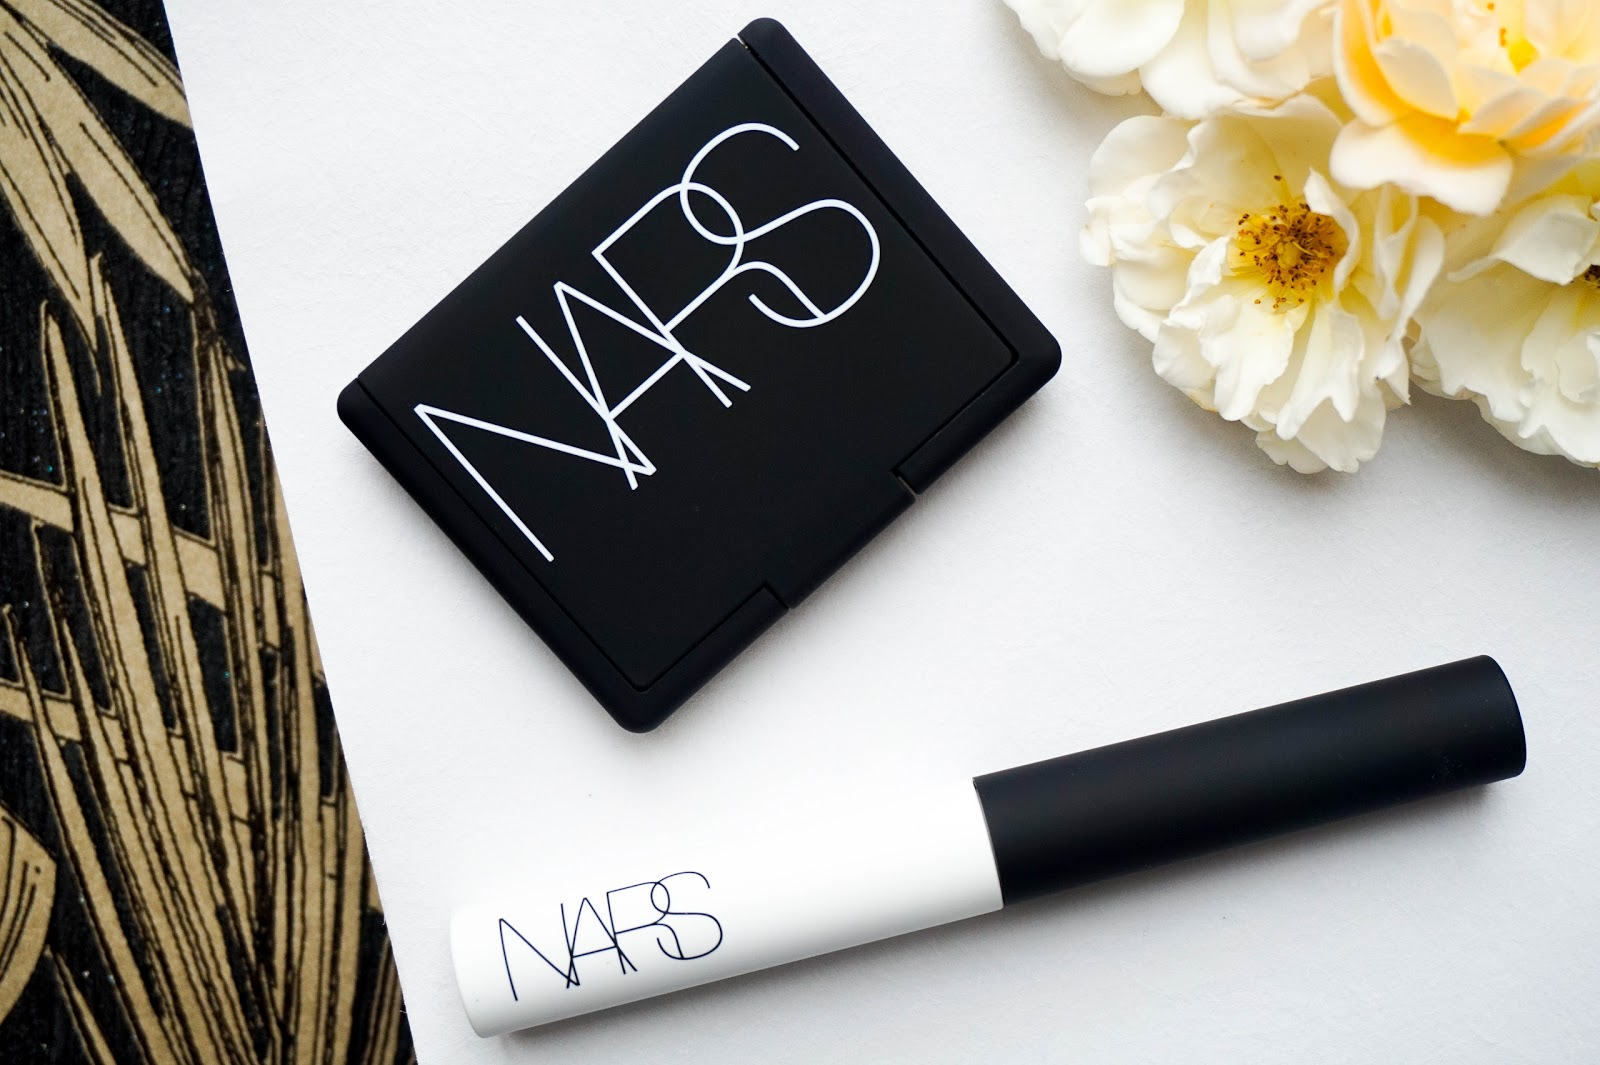 All Eyes On NARS, Duo Eyeshadow Surabaya, Smudge Proof Eyeshadow Base